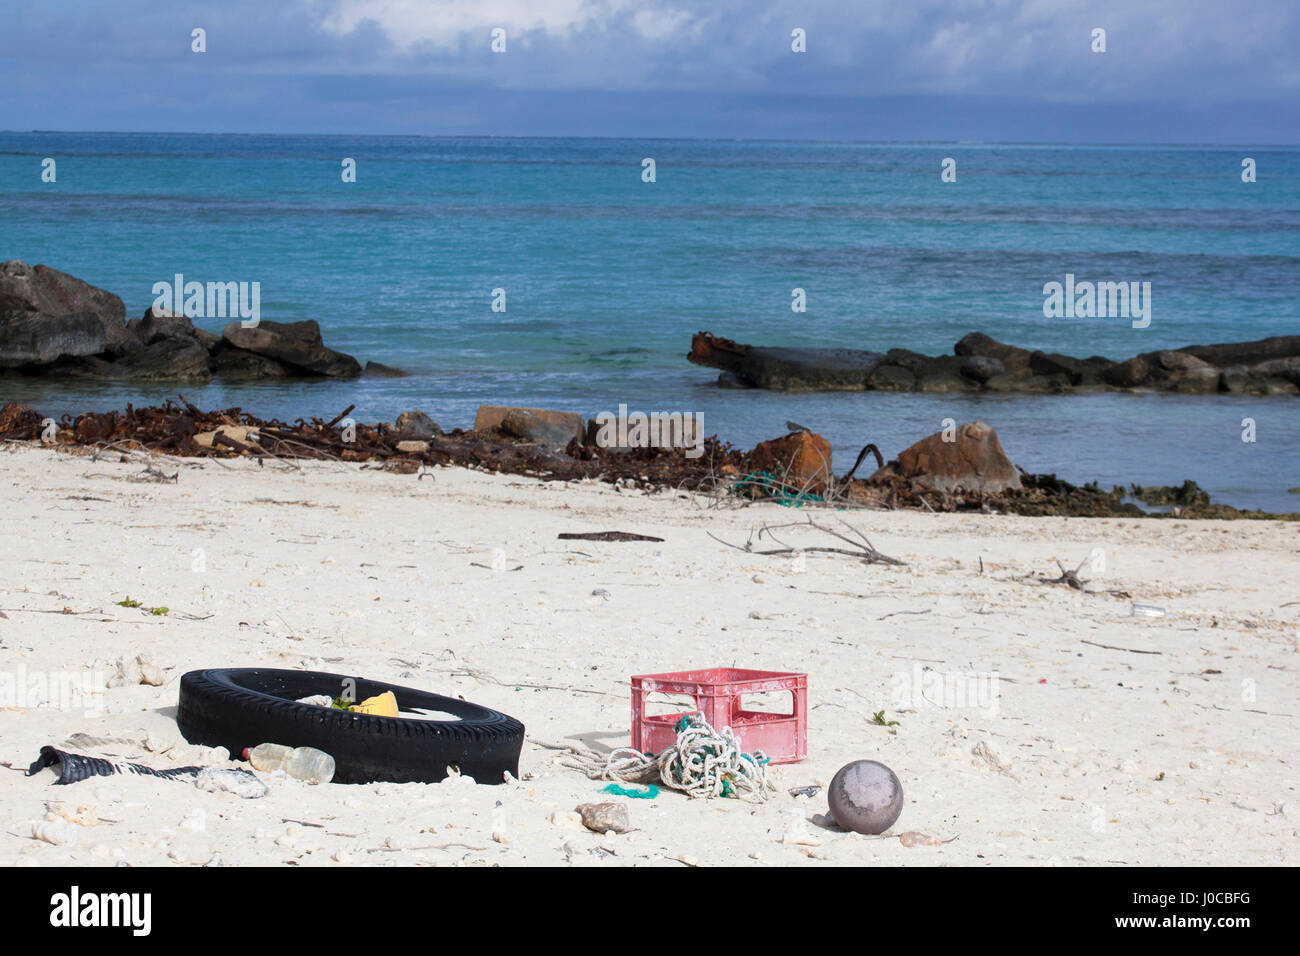 Trash including tire, plastic water bottle, box and ropes washed ashore on the beach of a North Pacific island - Stock Image